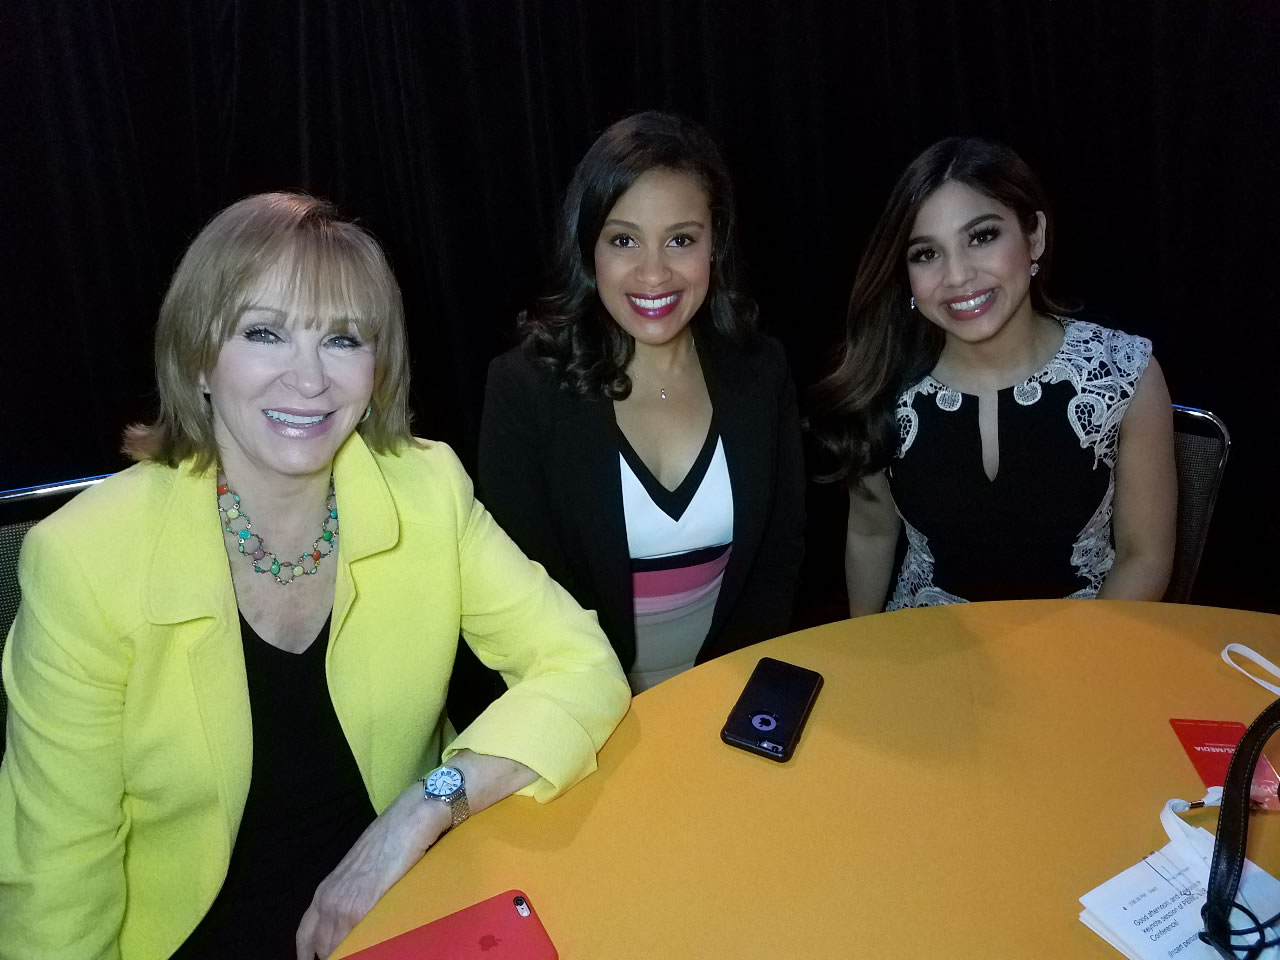 "<div class=""meta image-caption""><div class=""origin-logo origin-image none""><span>none</span></div><span class=""caption-text"">ABC7's Cheryl Jennings, Ama Dates and Ntashe Zouves at the Professional BusinessWomen of California Conference in San Francisco on March, 28, 2017. (KGO-TV)</span></div>"